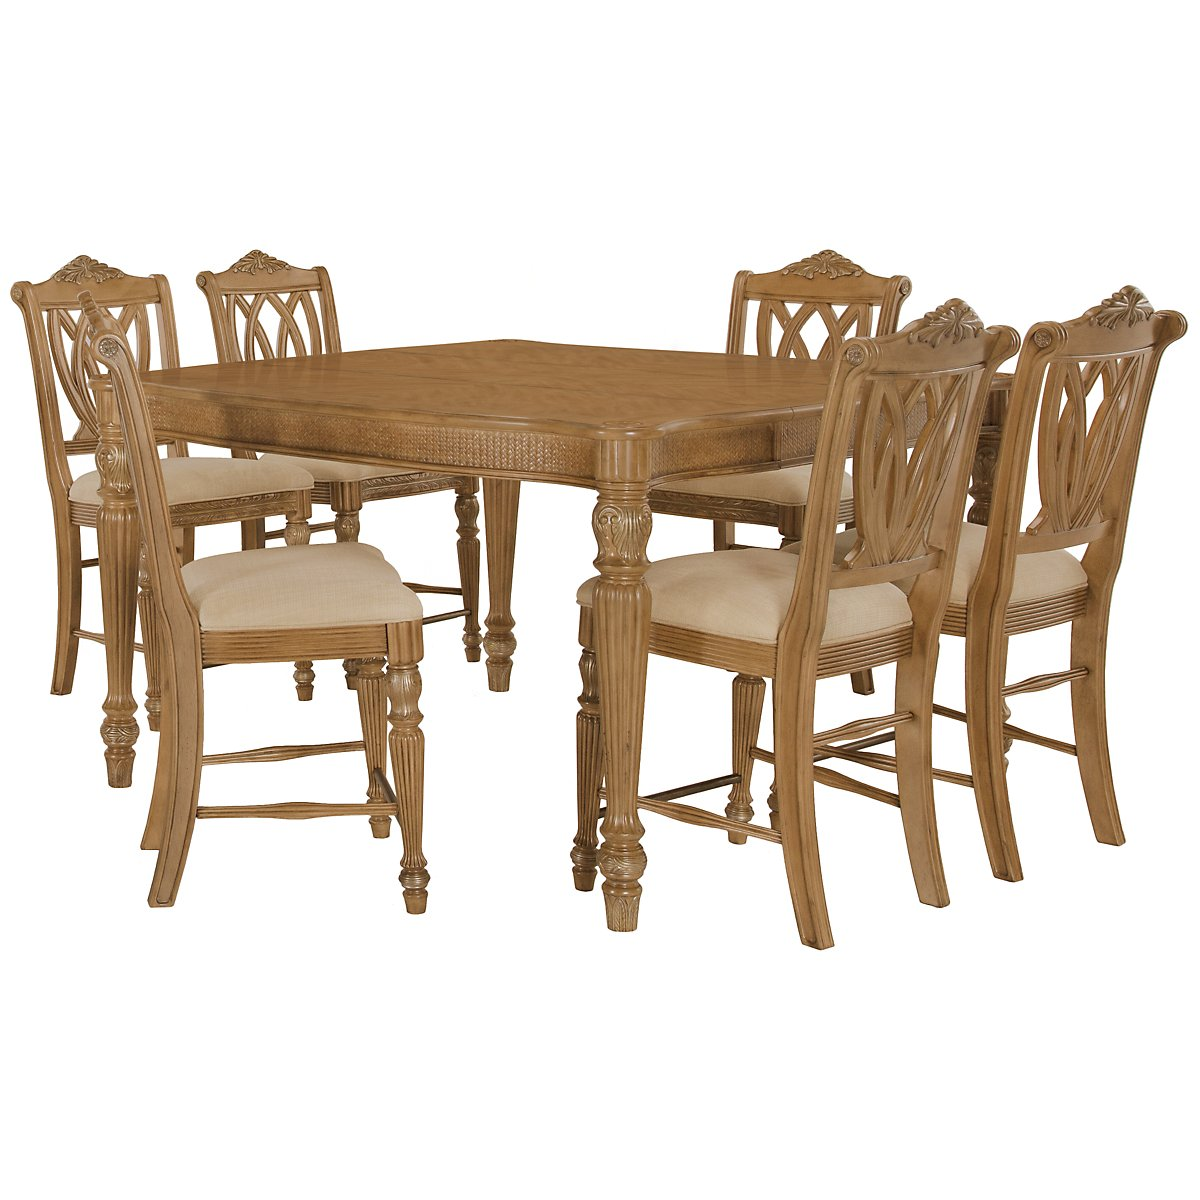 Tradewinds Light Tone Square High Table & 4 Wood Barstools